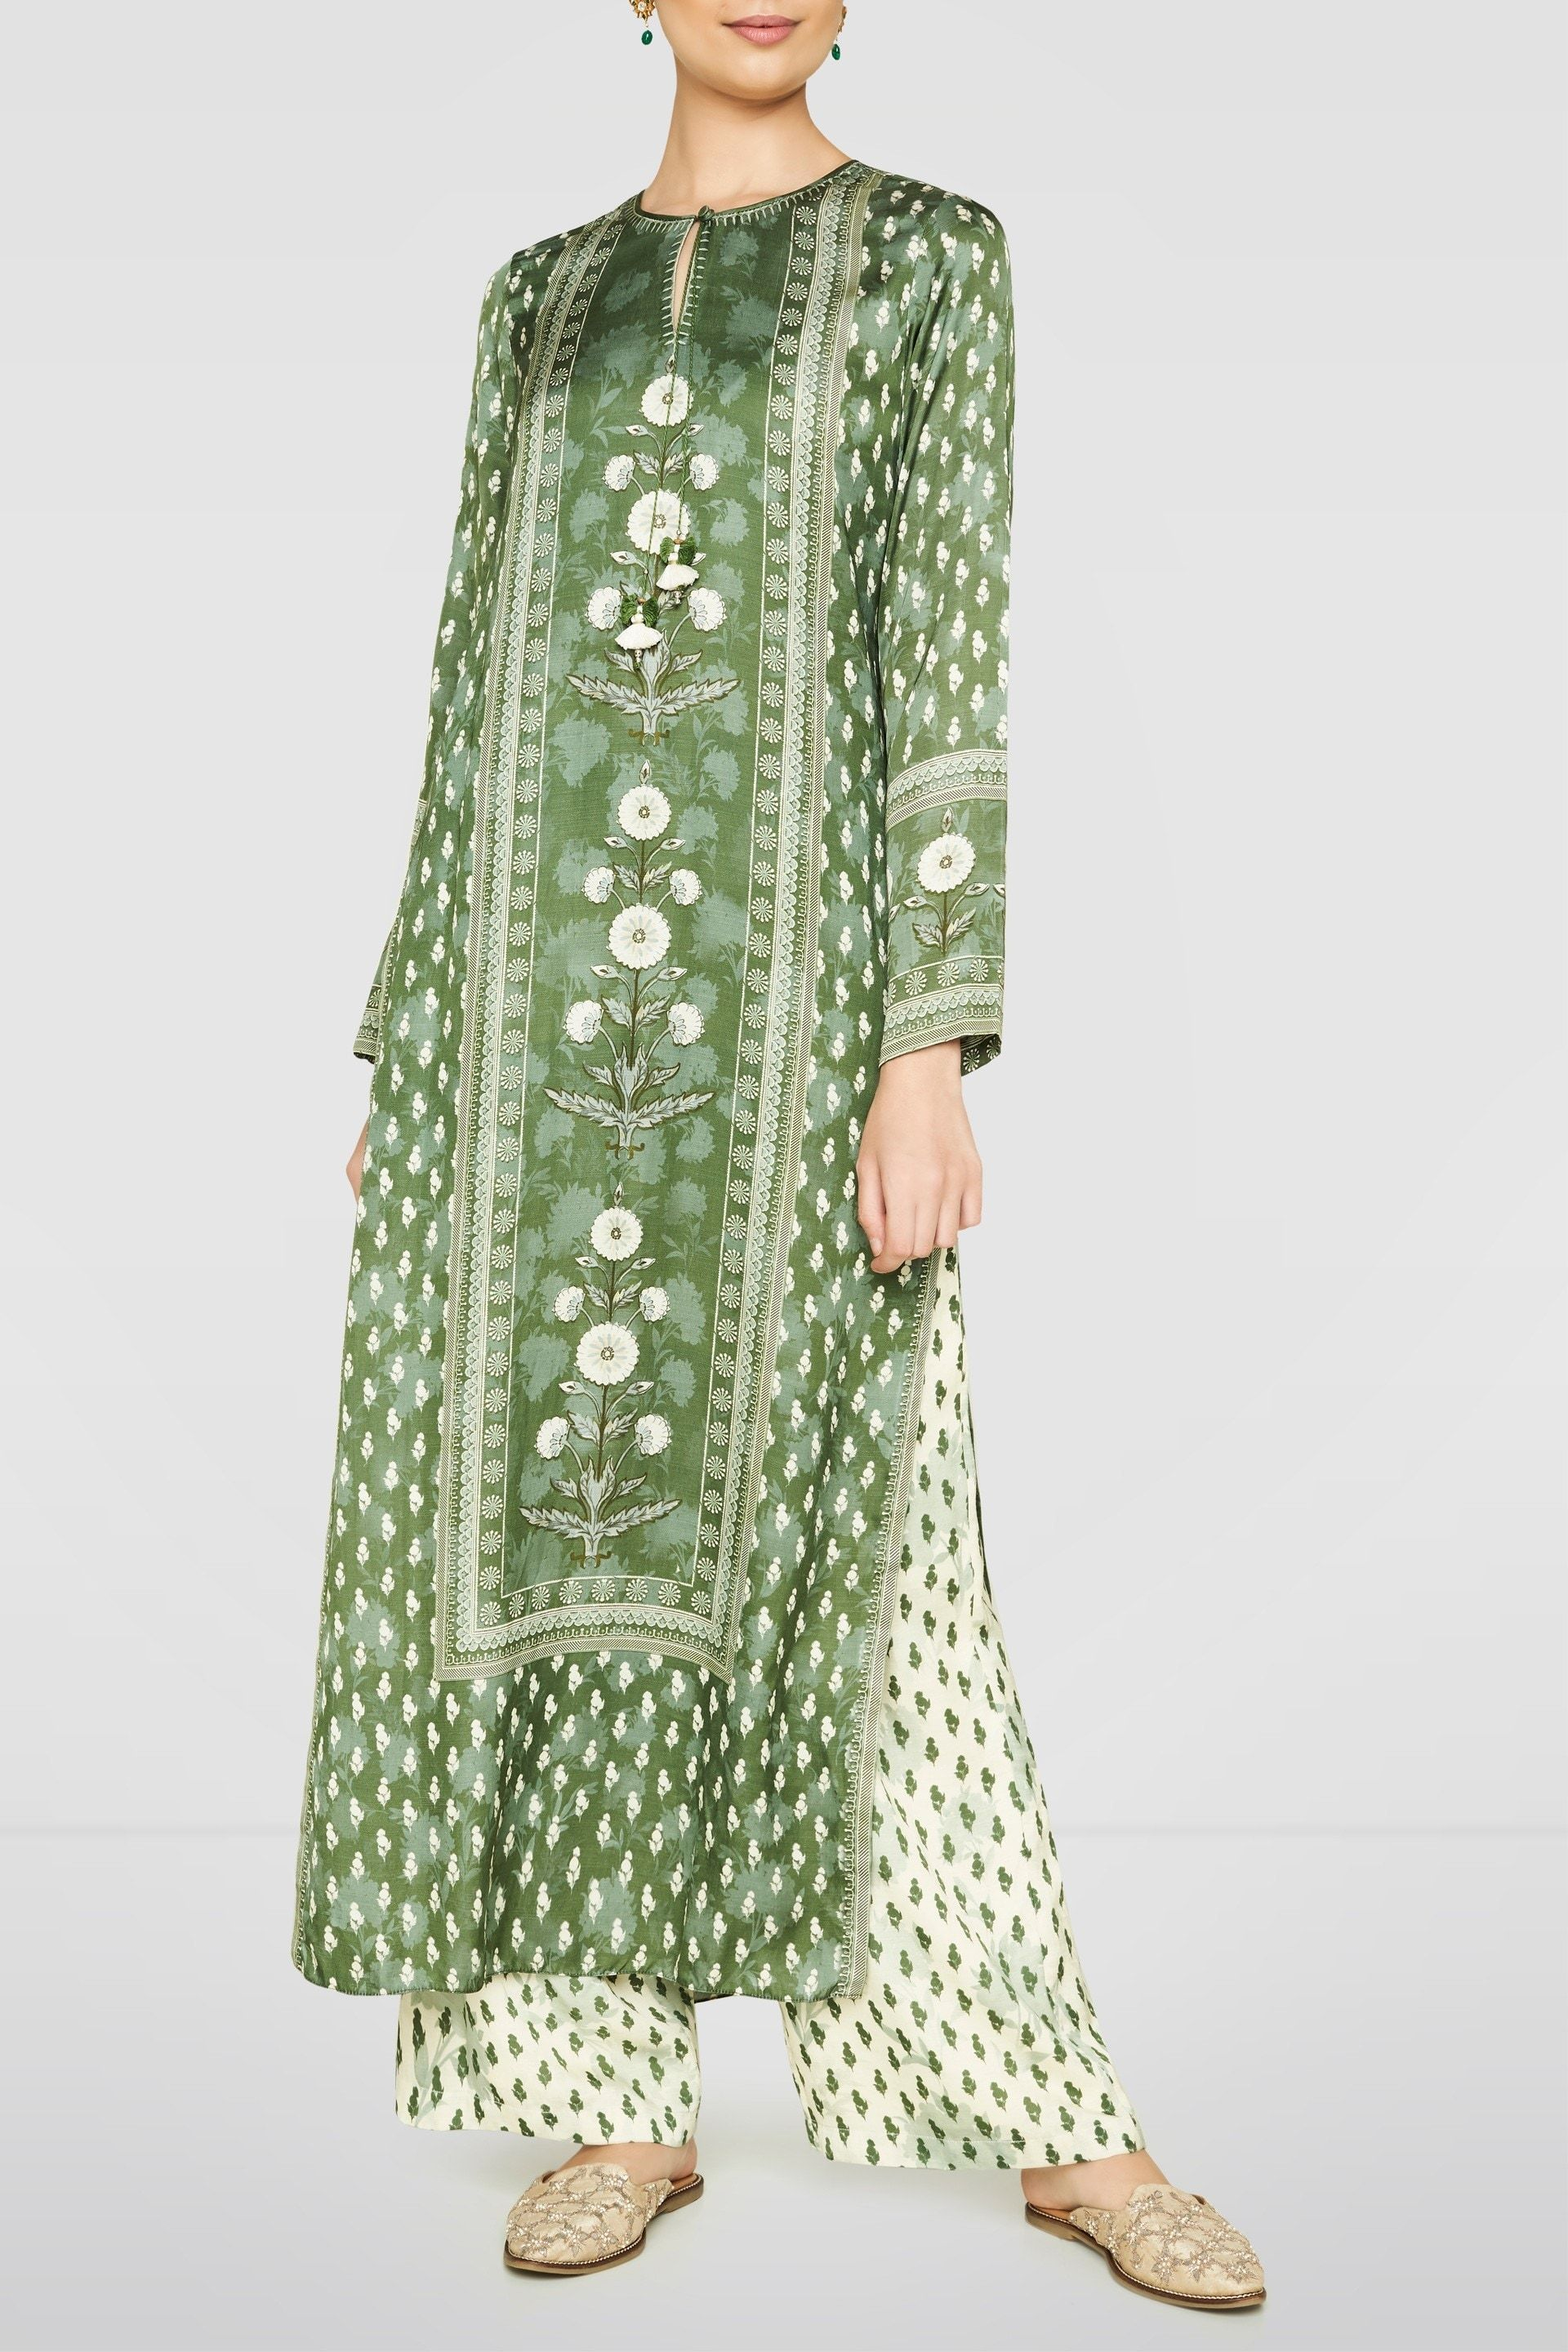 Designer Suits Buy Yamini Set For Women Online Fw19rrm259 Fw19rrm259p Green Anita Dongre In 2020 Indian Designer Outfits Embroidery Suits Design Fashion